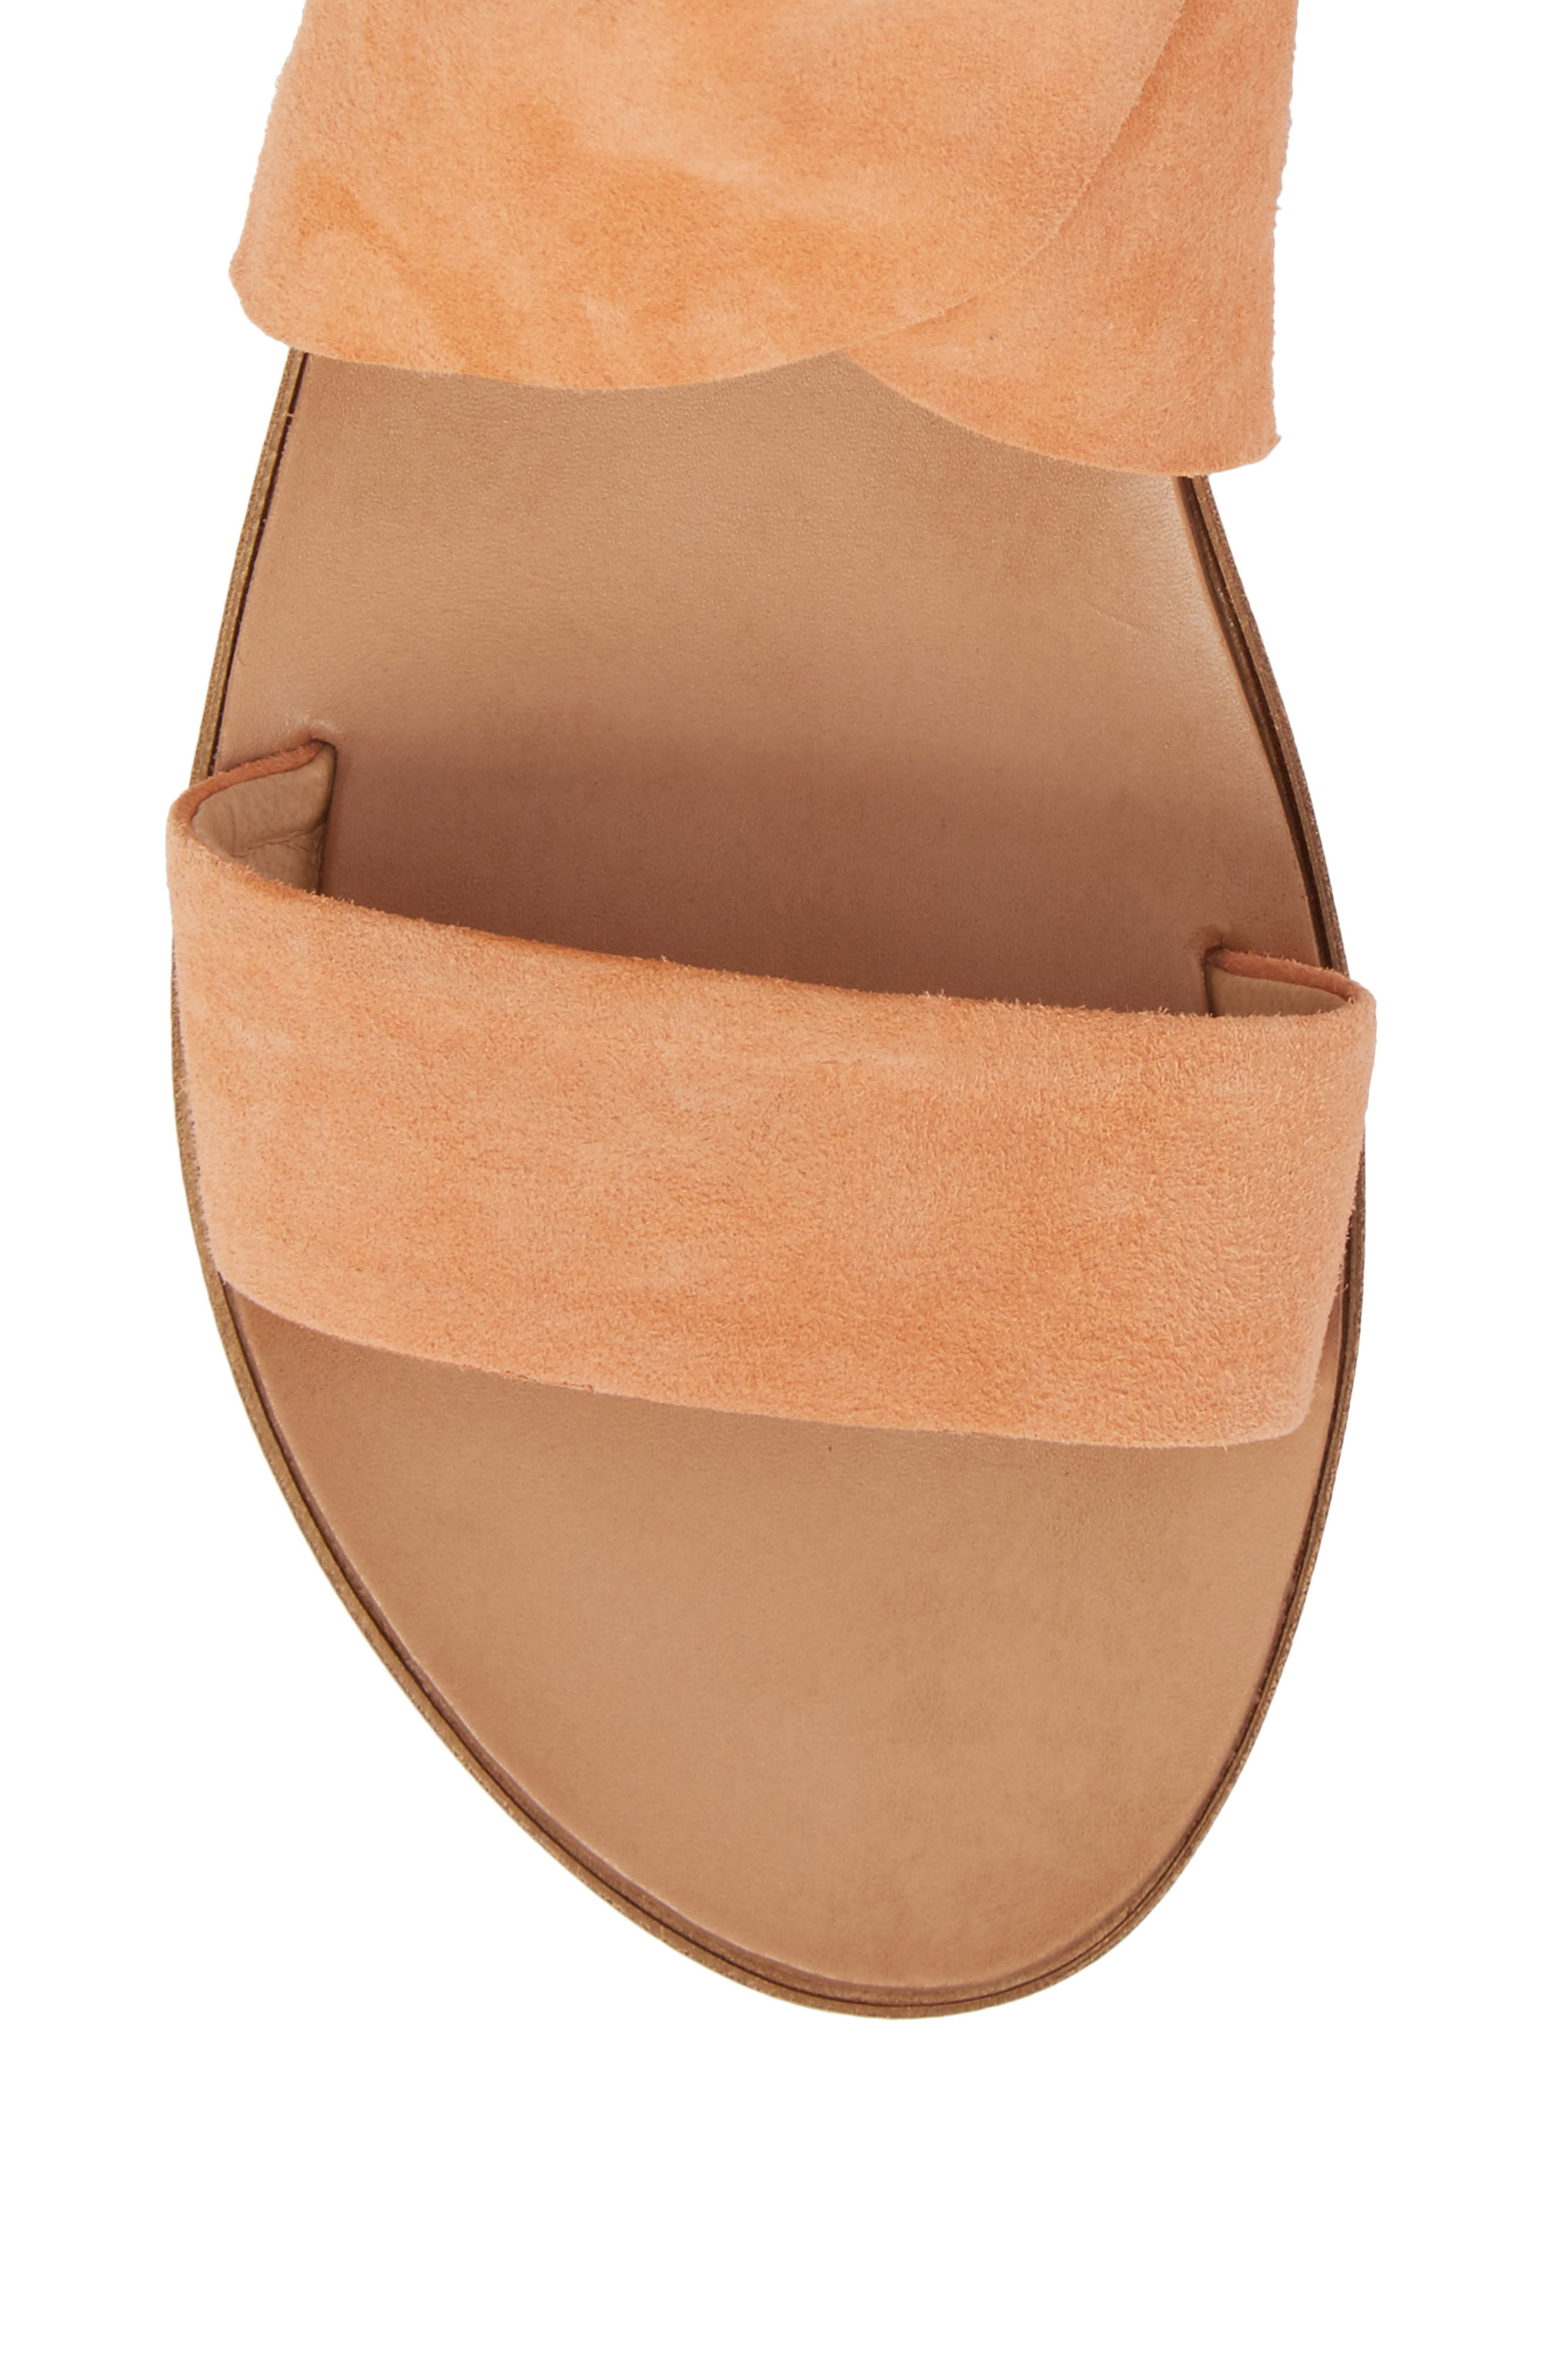 Cruisin Ankle Wrap Sandal,                             Alternate thumbnail 5, color,                             PEACH SUEDE